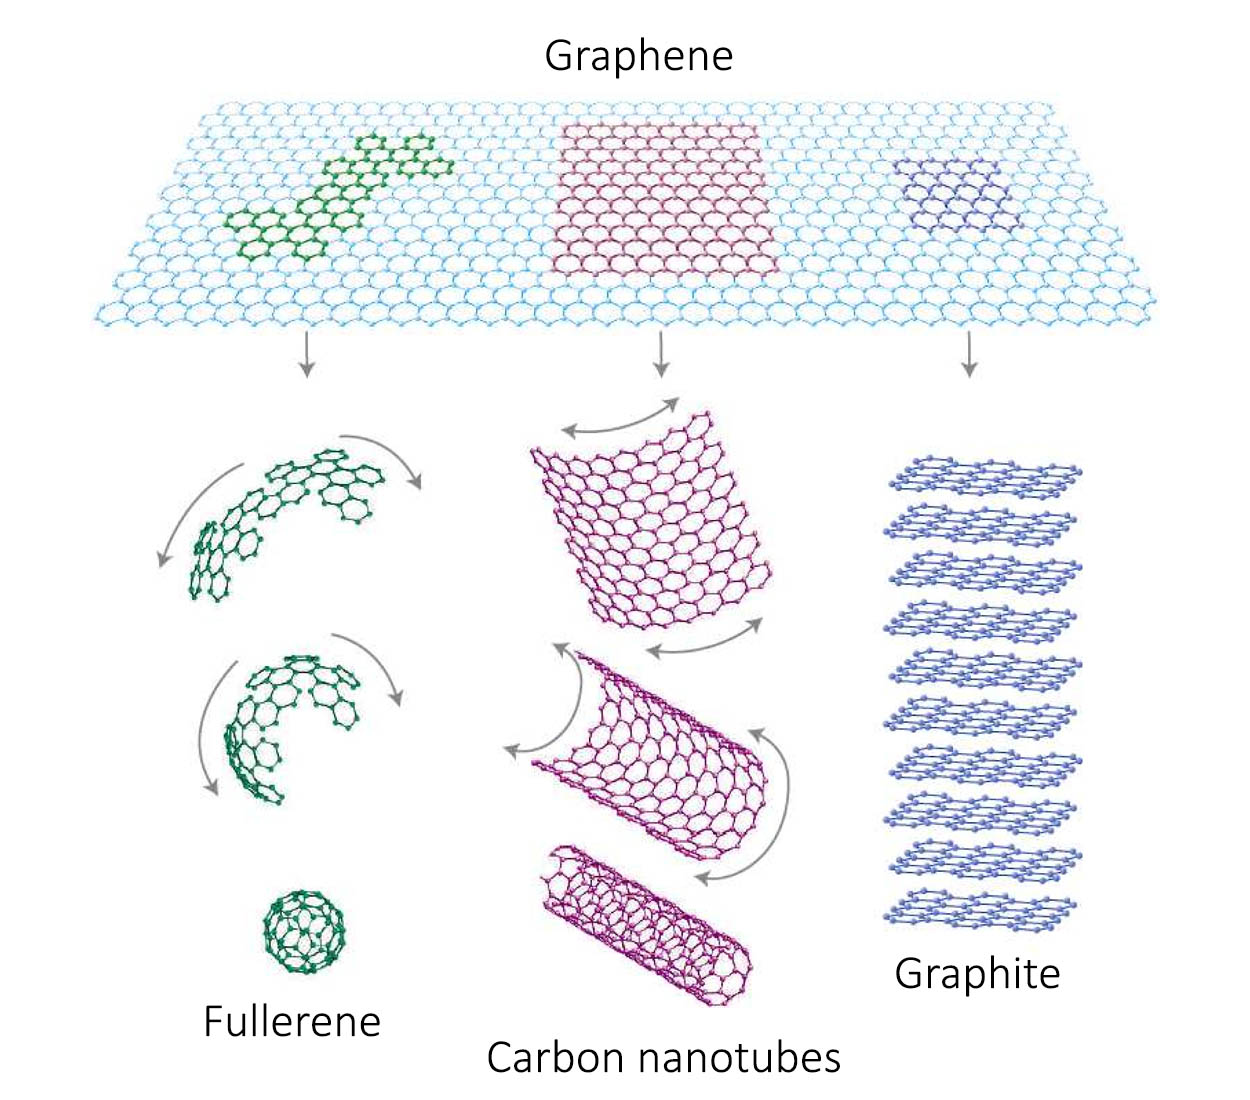 Carbon nanomaterials ninithi graphene as the source of other nanoparticles gamestrikefo Choice Image